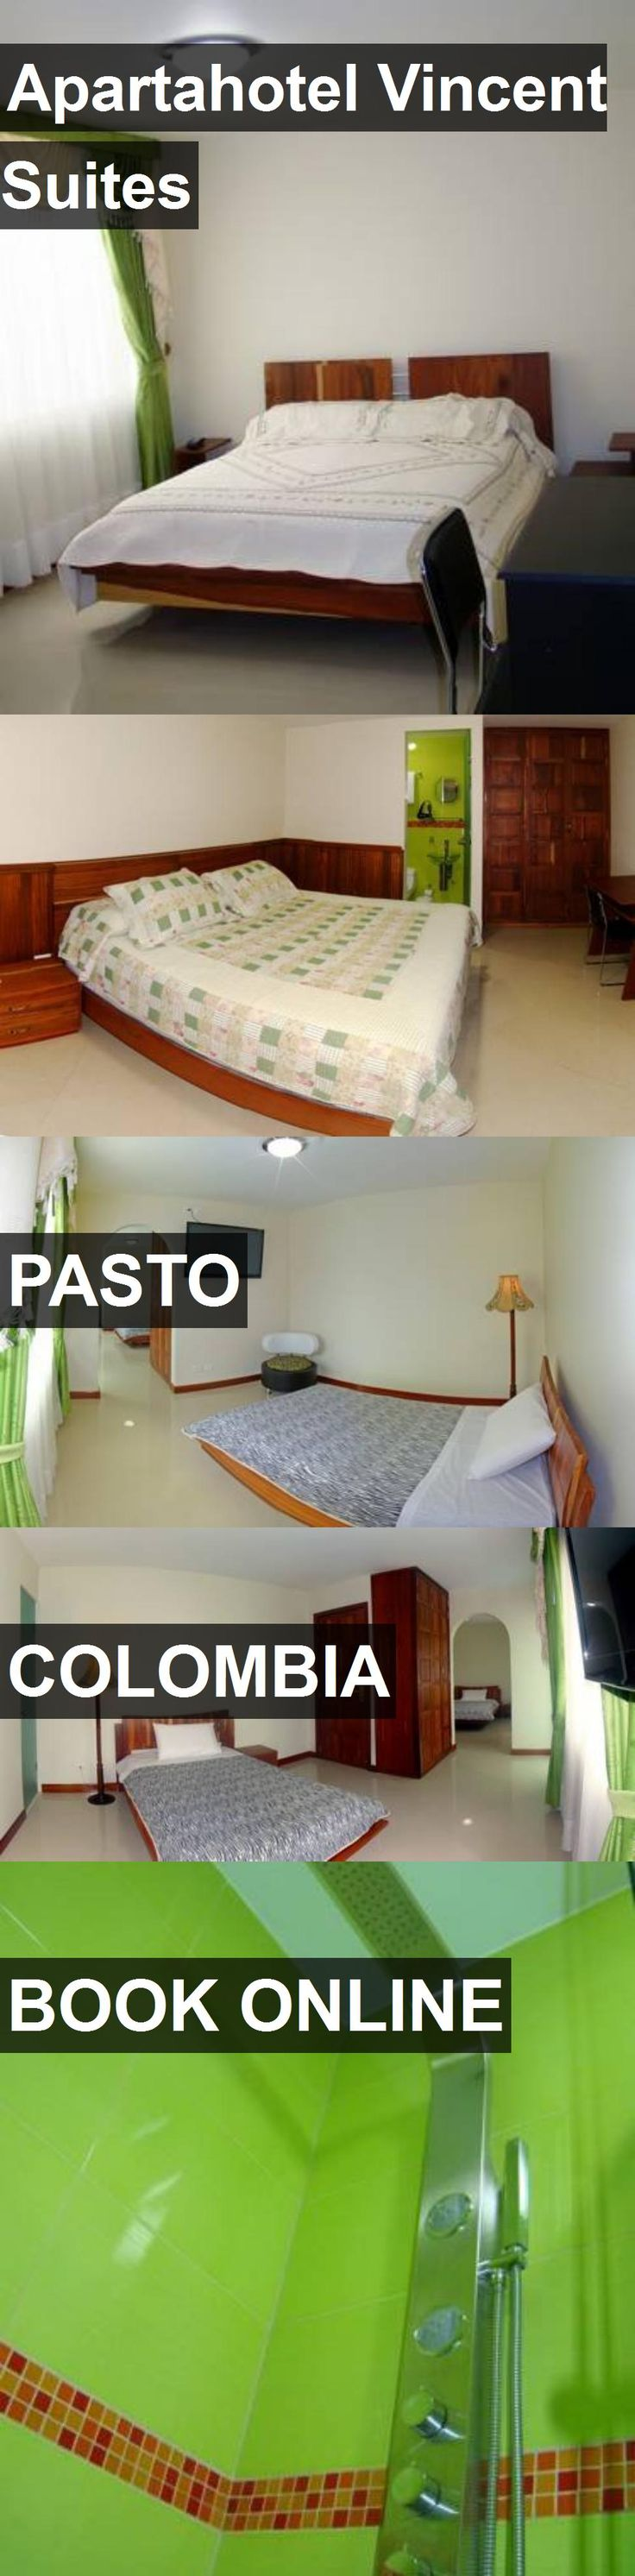 Apartahotel Vincent Suites in Pasto, Colombia. For more information, photos, reviews and best prices please follow the link. #Colombia #Pasto #travel #vacation #hotel